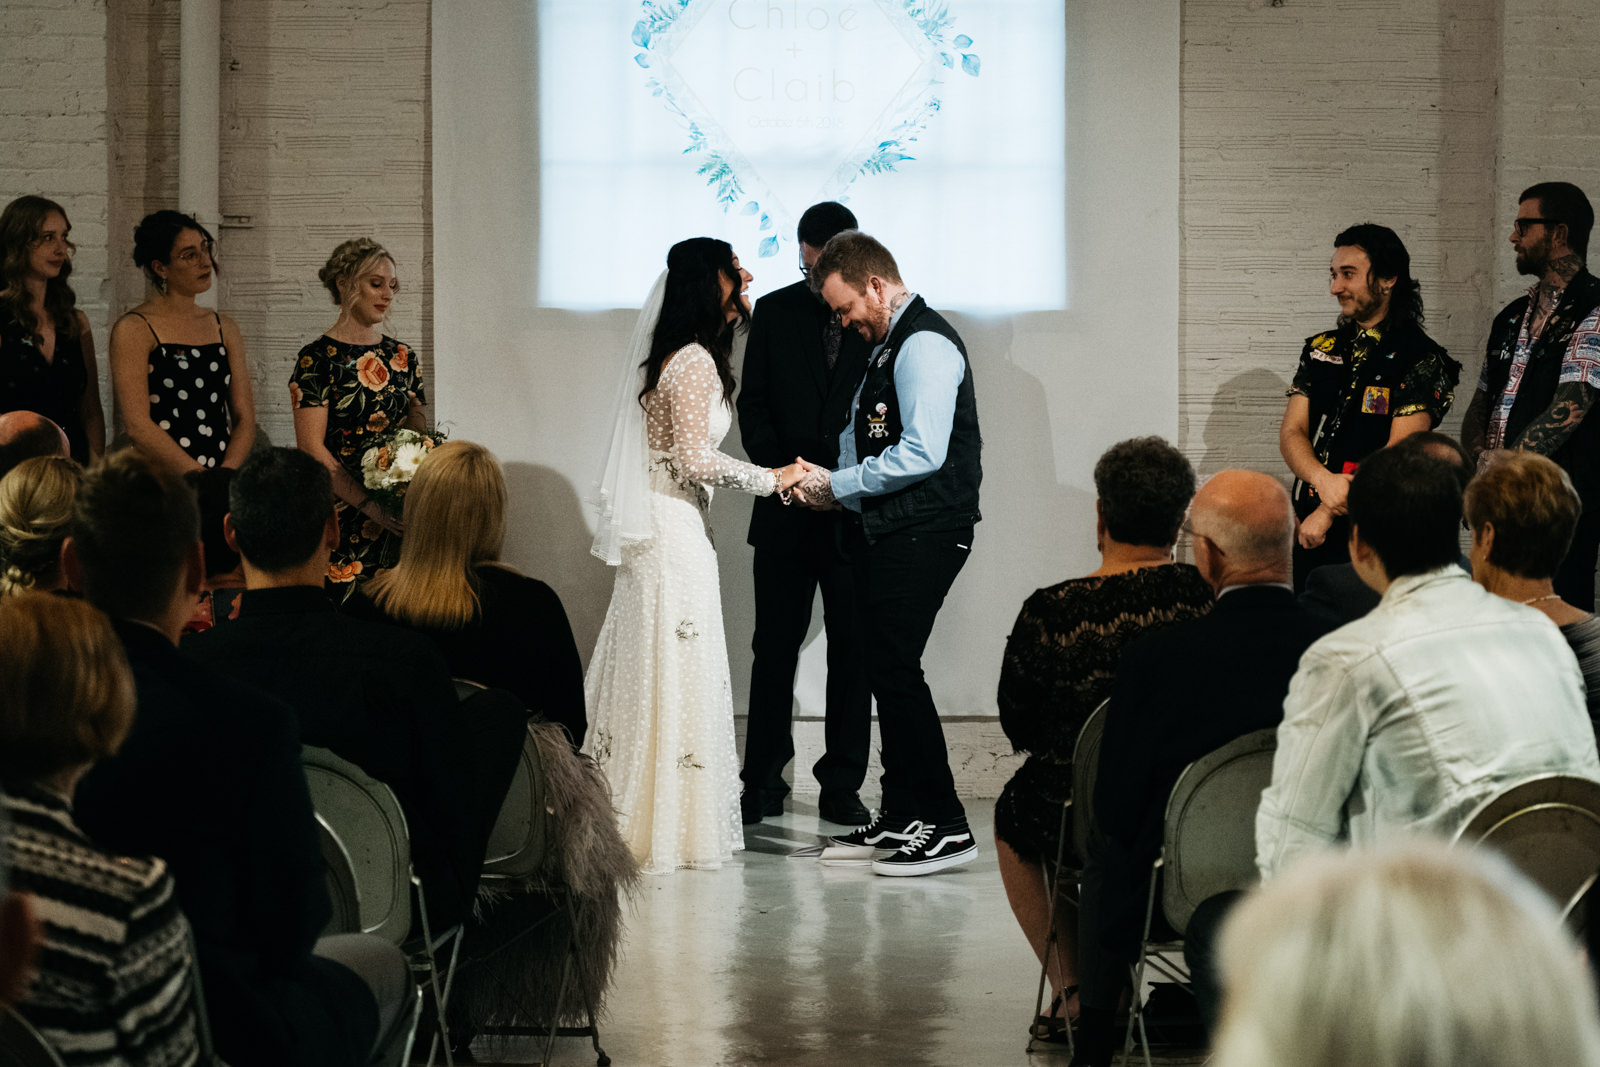 Bride and Groom's Ceremony at Growing Hope Market Place with Michigan Wedding Photographers in Ypsilanti